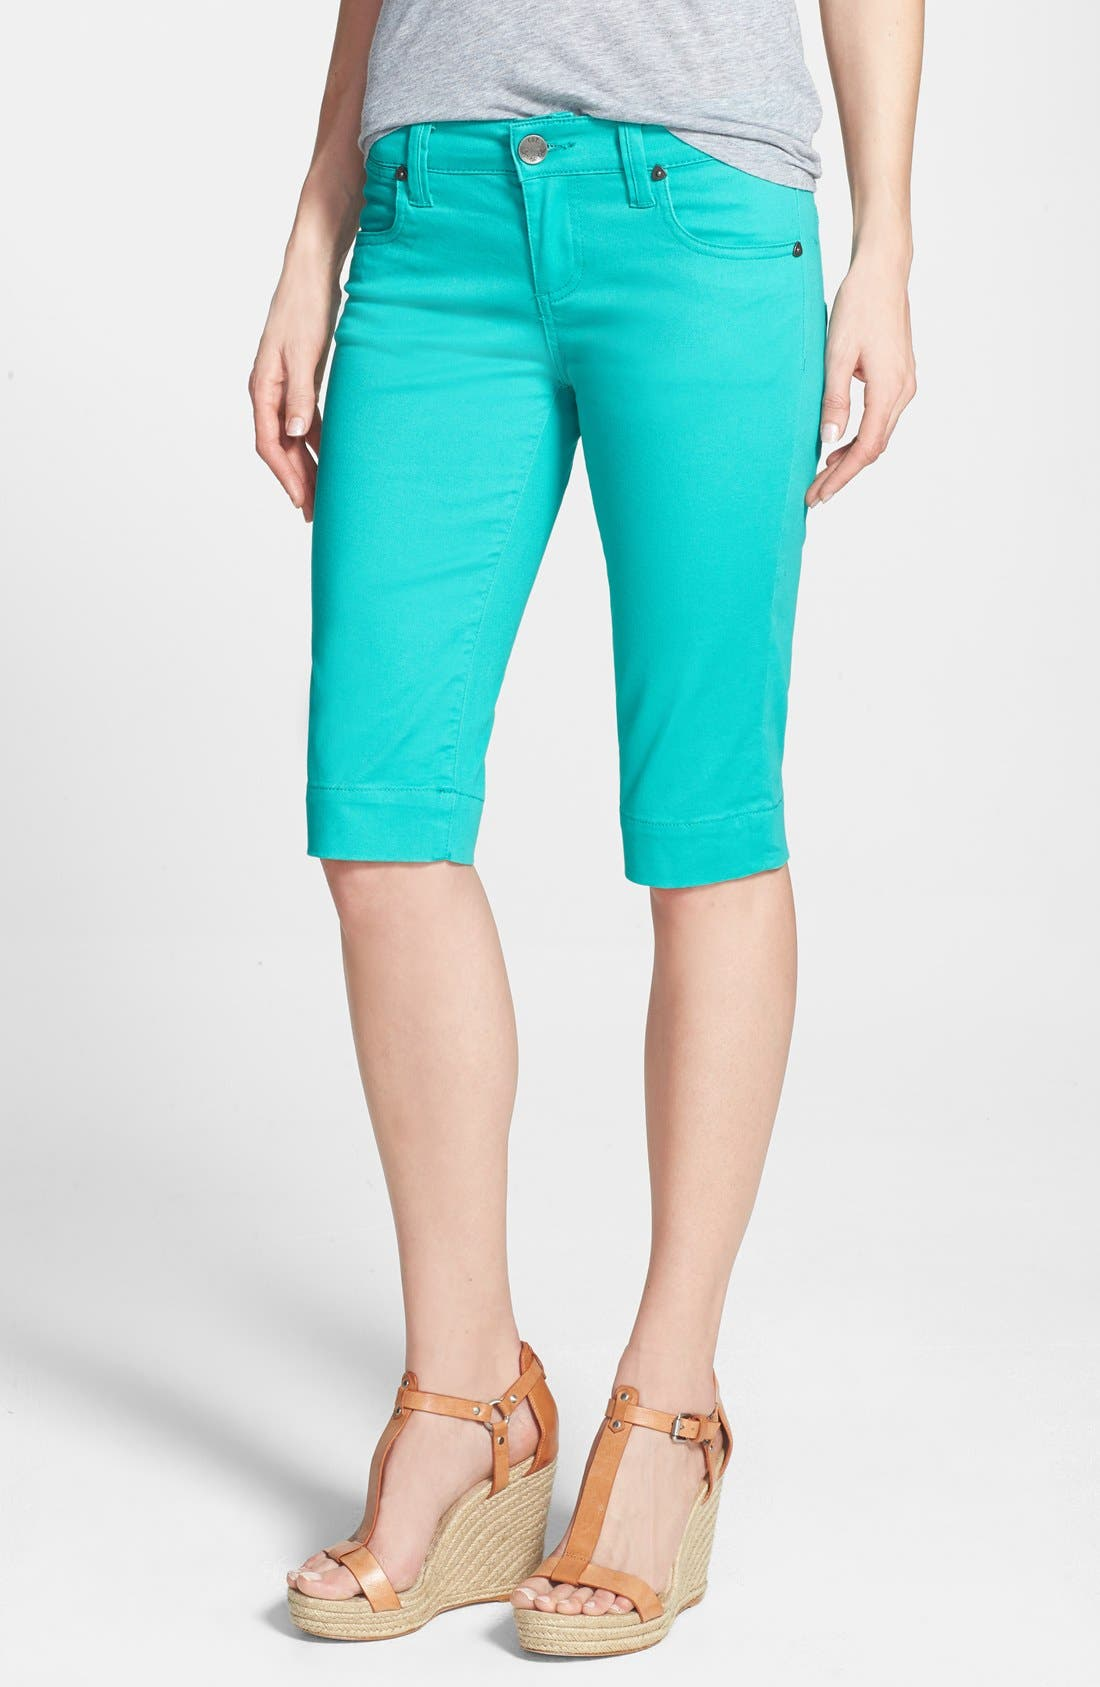 Alternate Image 1 Selected - KUT from the Kloth 'Natalie' Bermuda Shorts